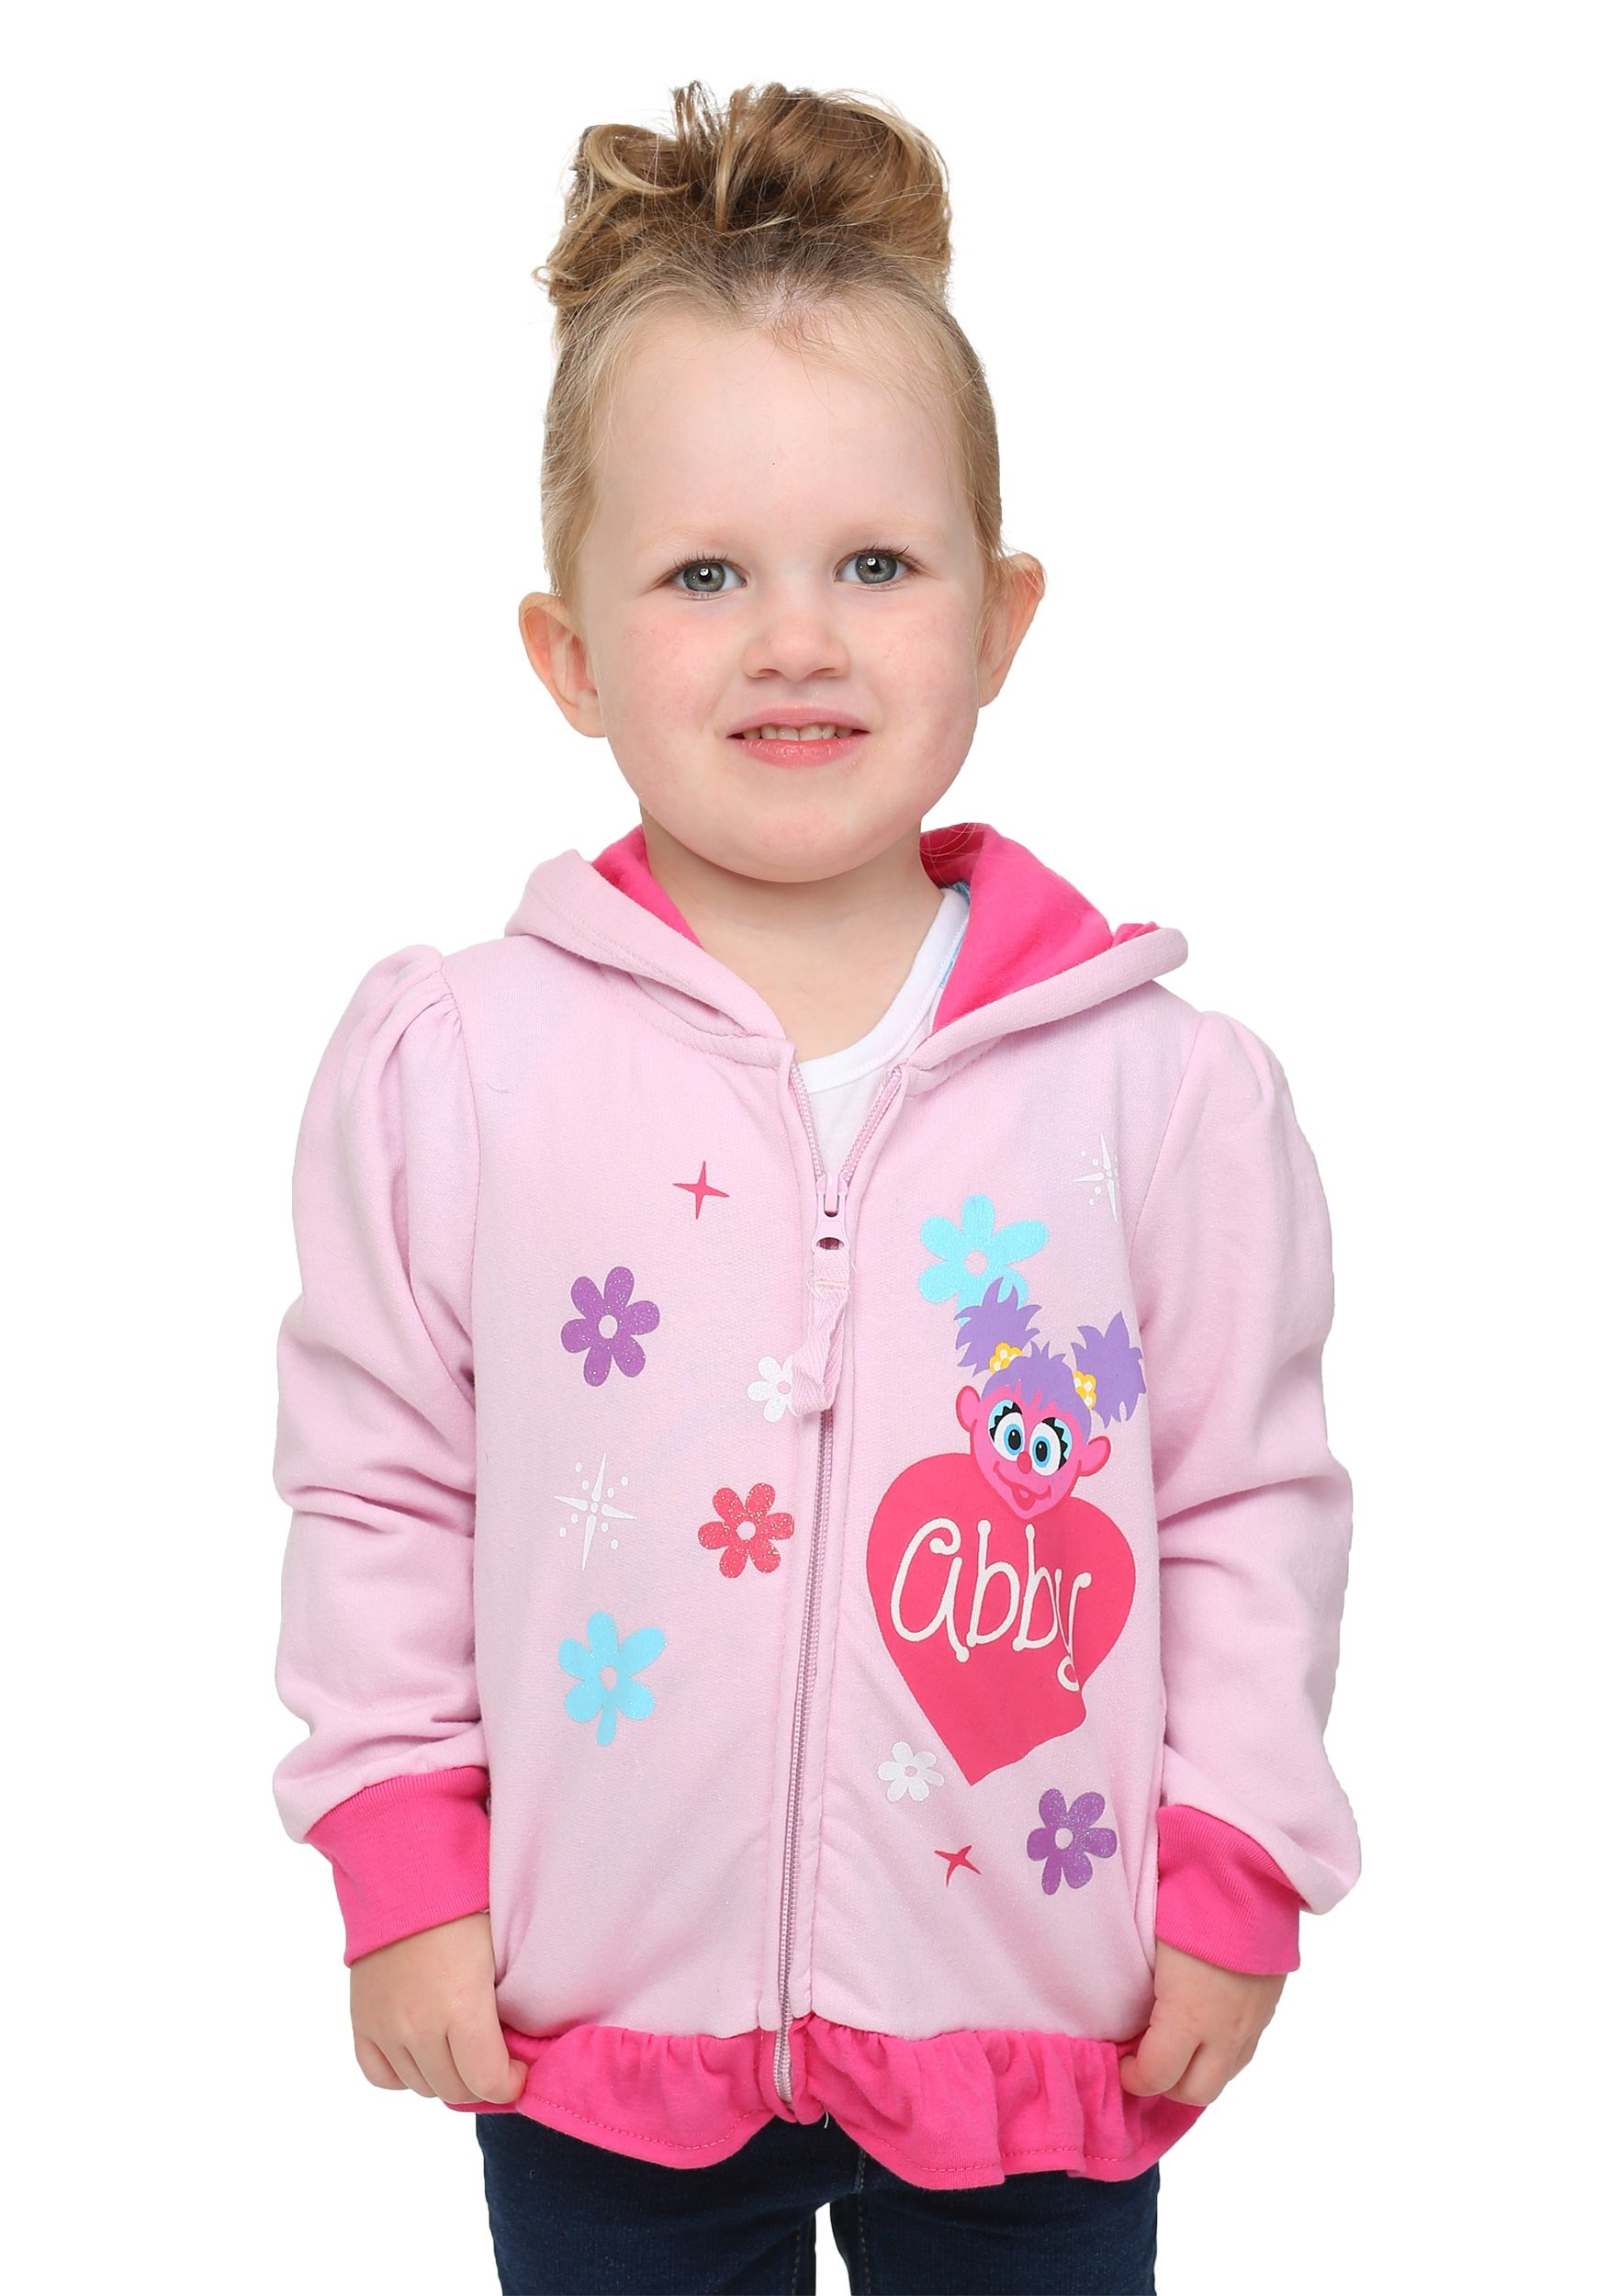 Shop Baby Girls apparel at Wrangler. newbez.ml is your source for western wear, jeans, shirts & outerwear for men, women and kids.